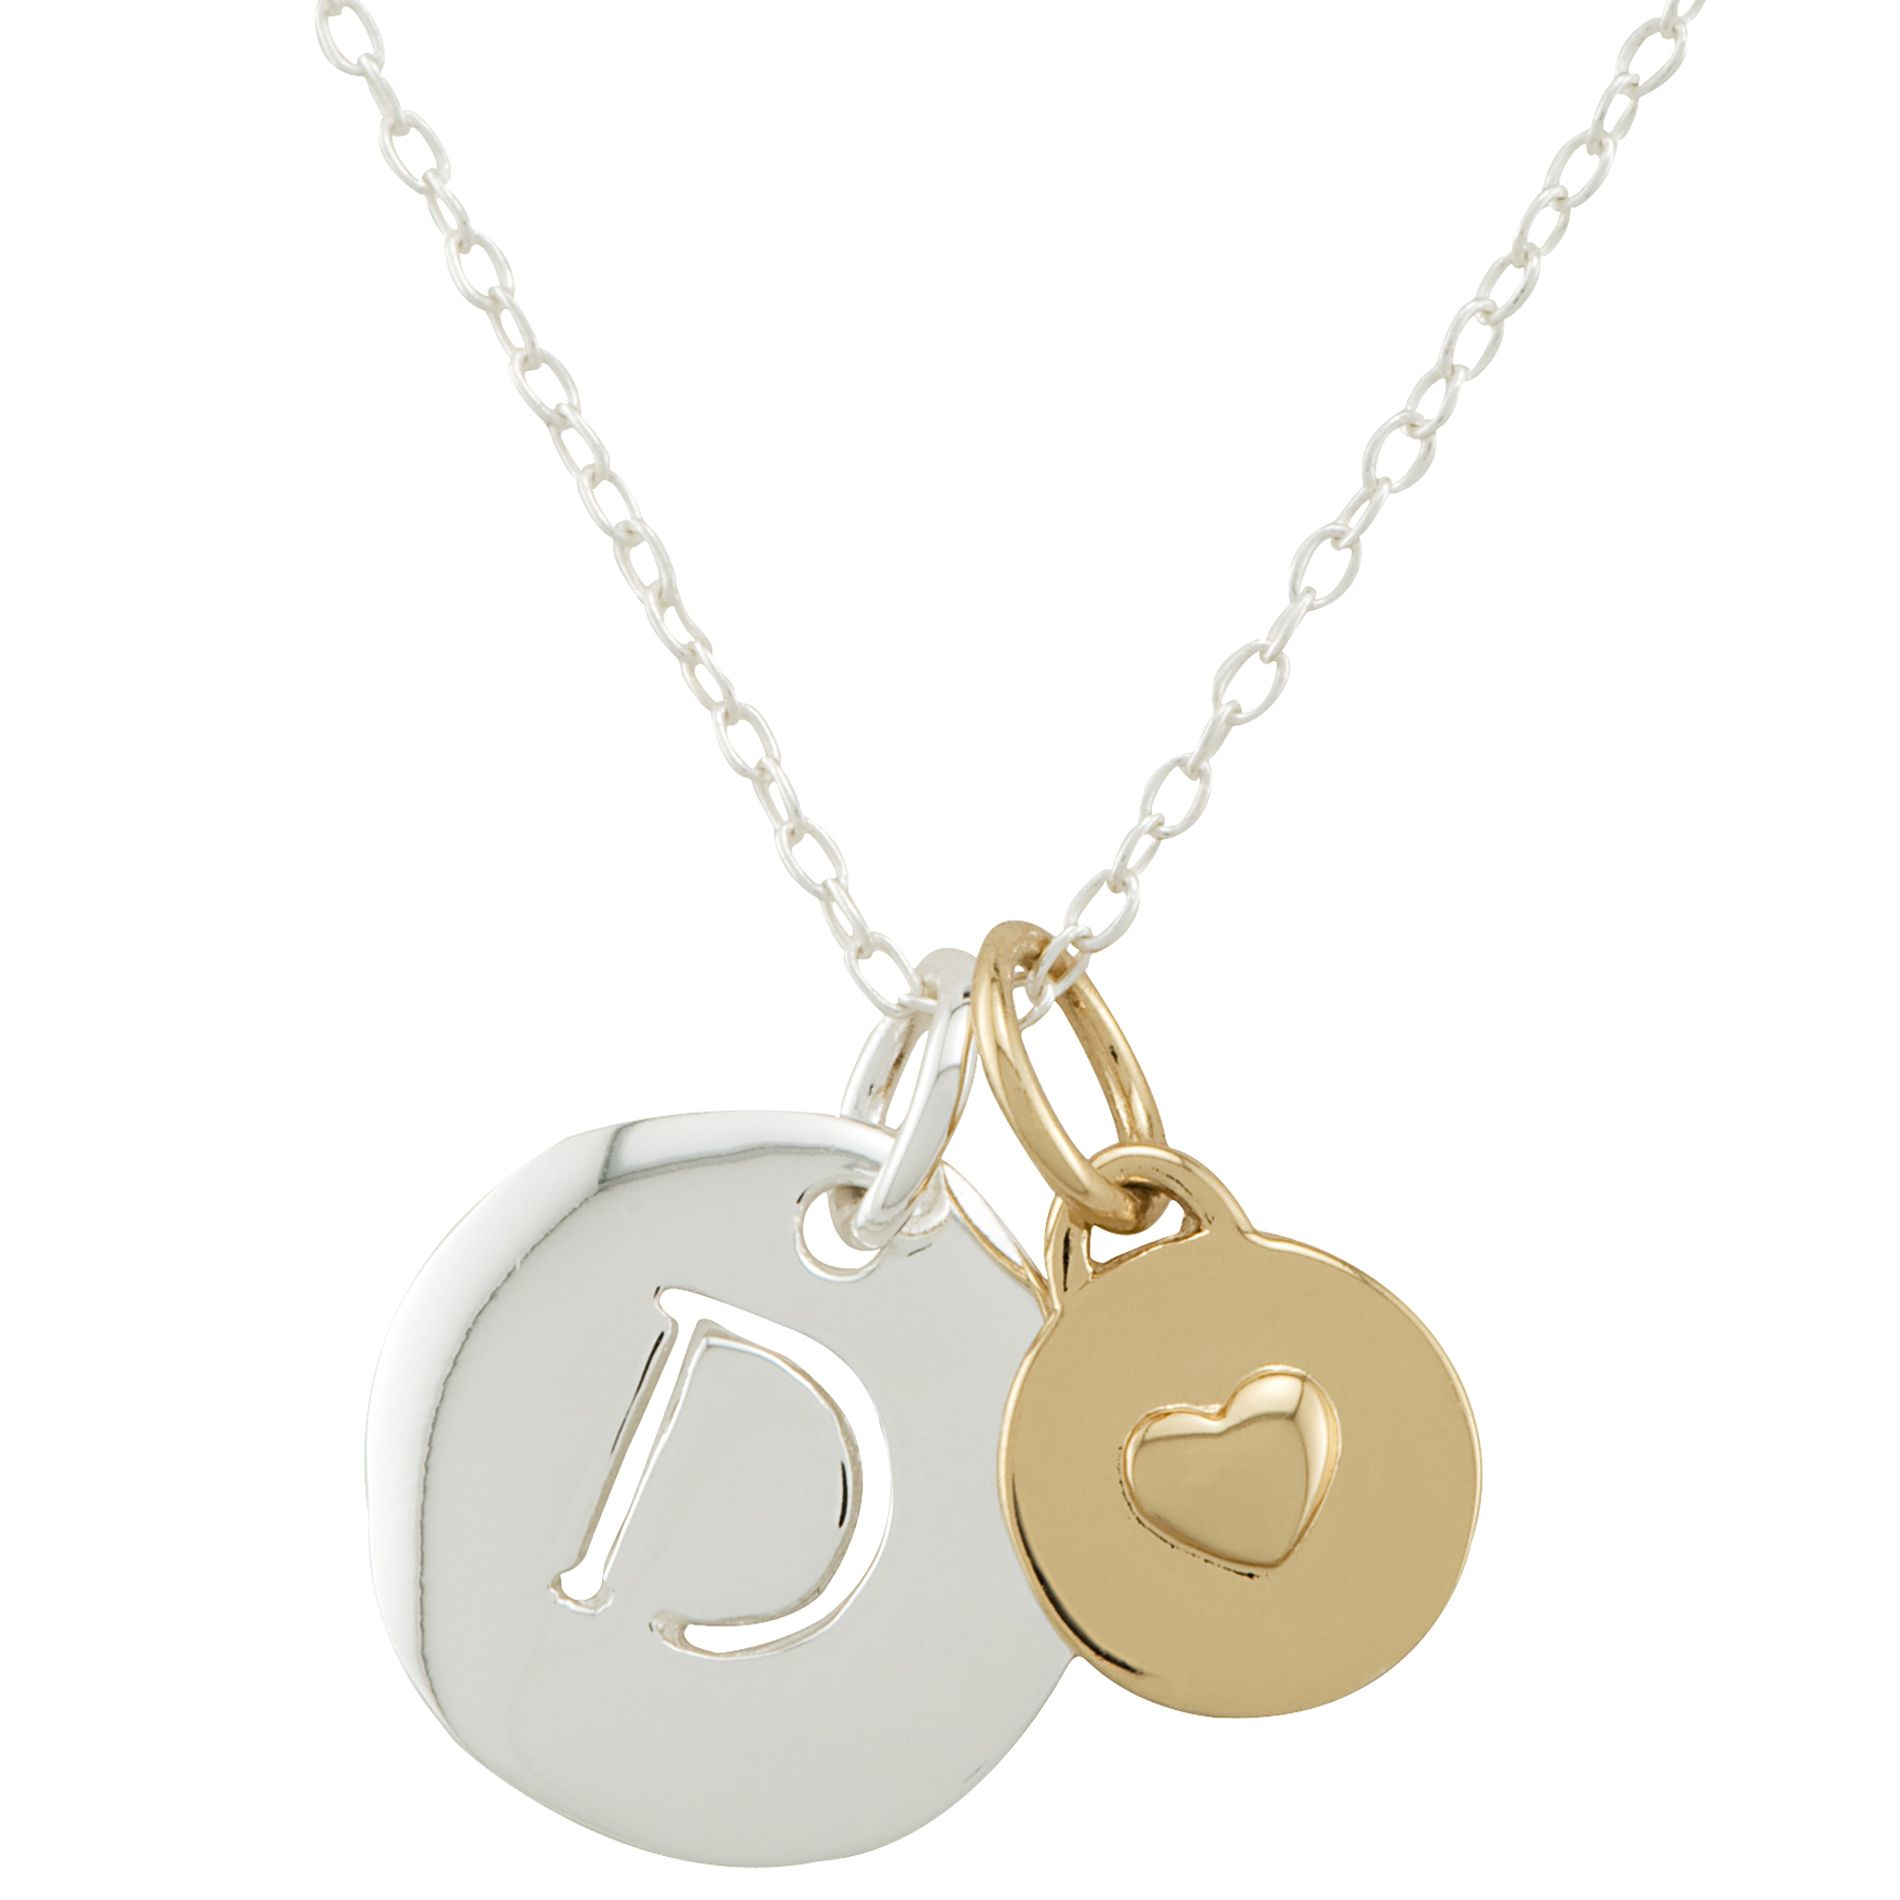 Sterling Silver D Initial Pendant with Gold Heart